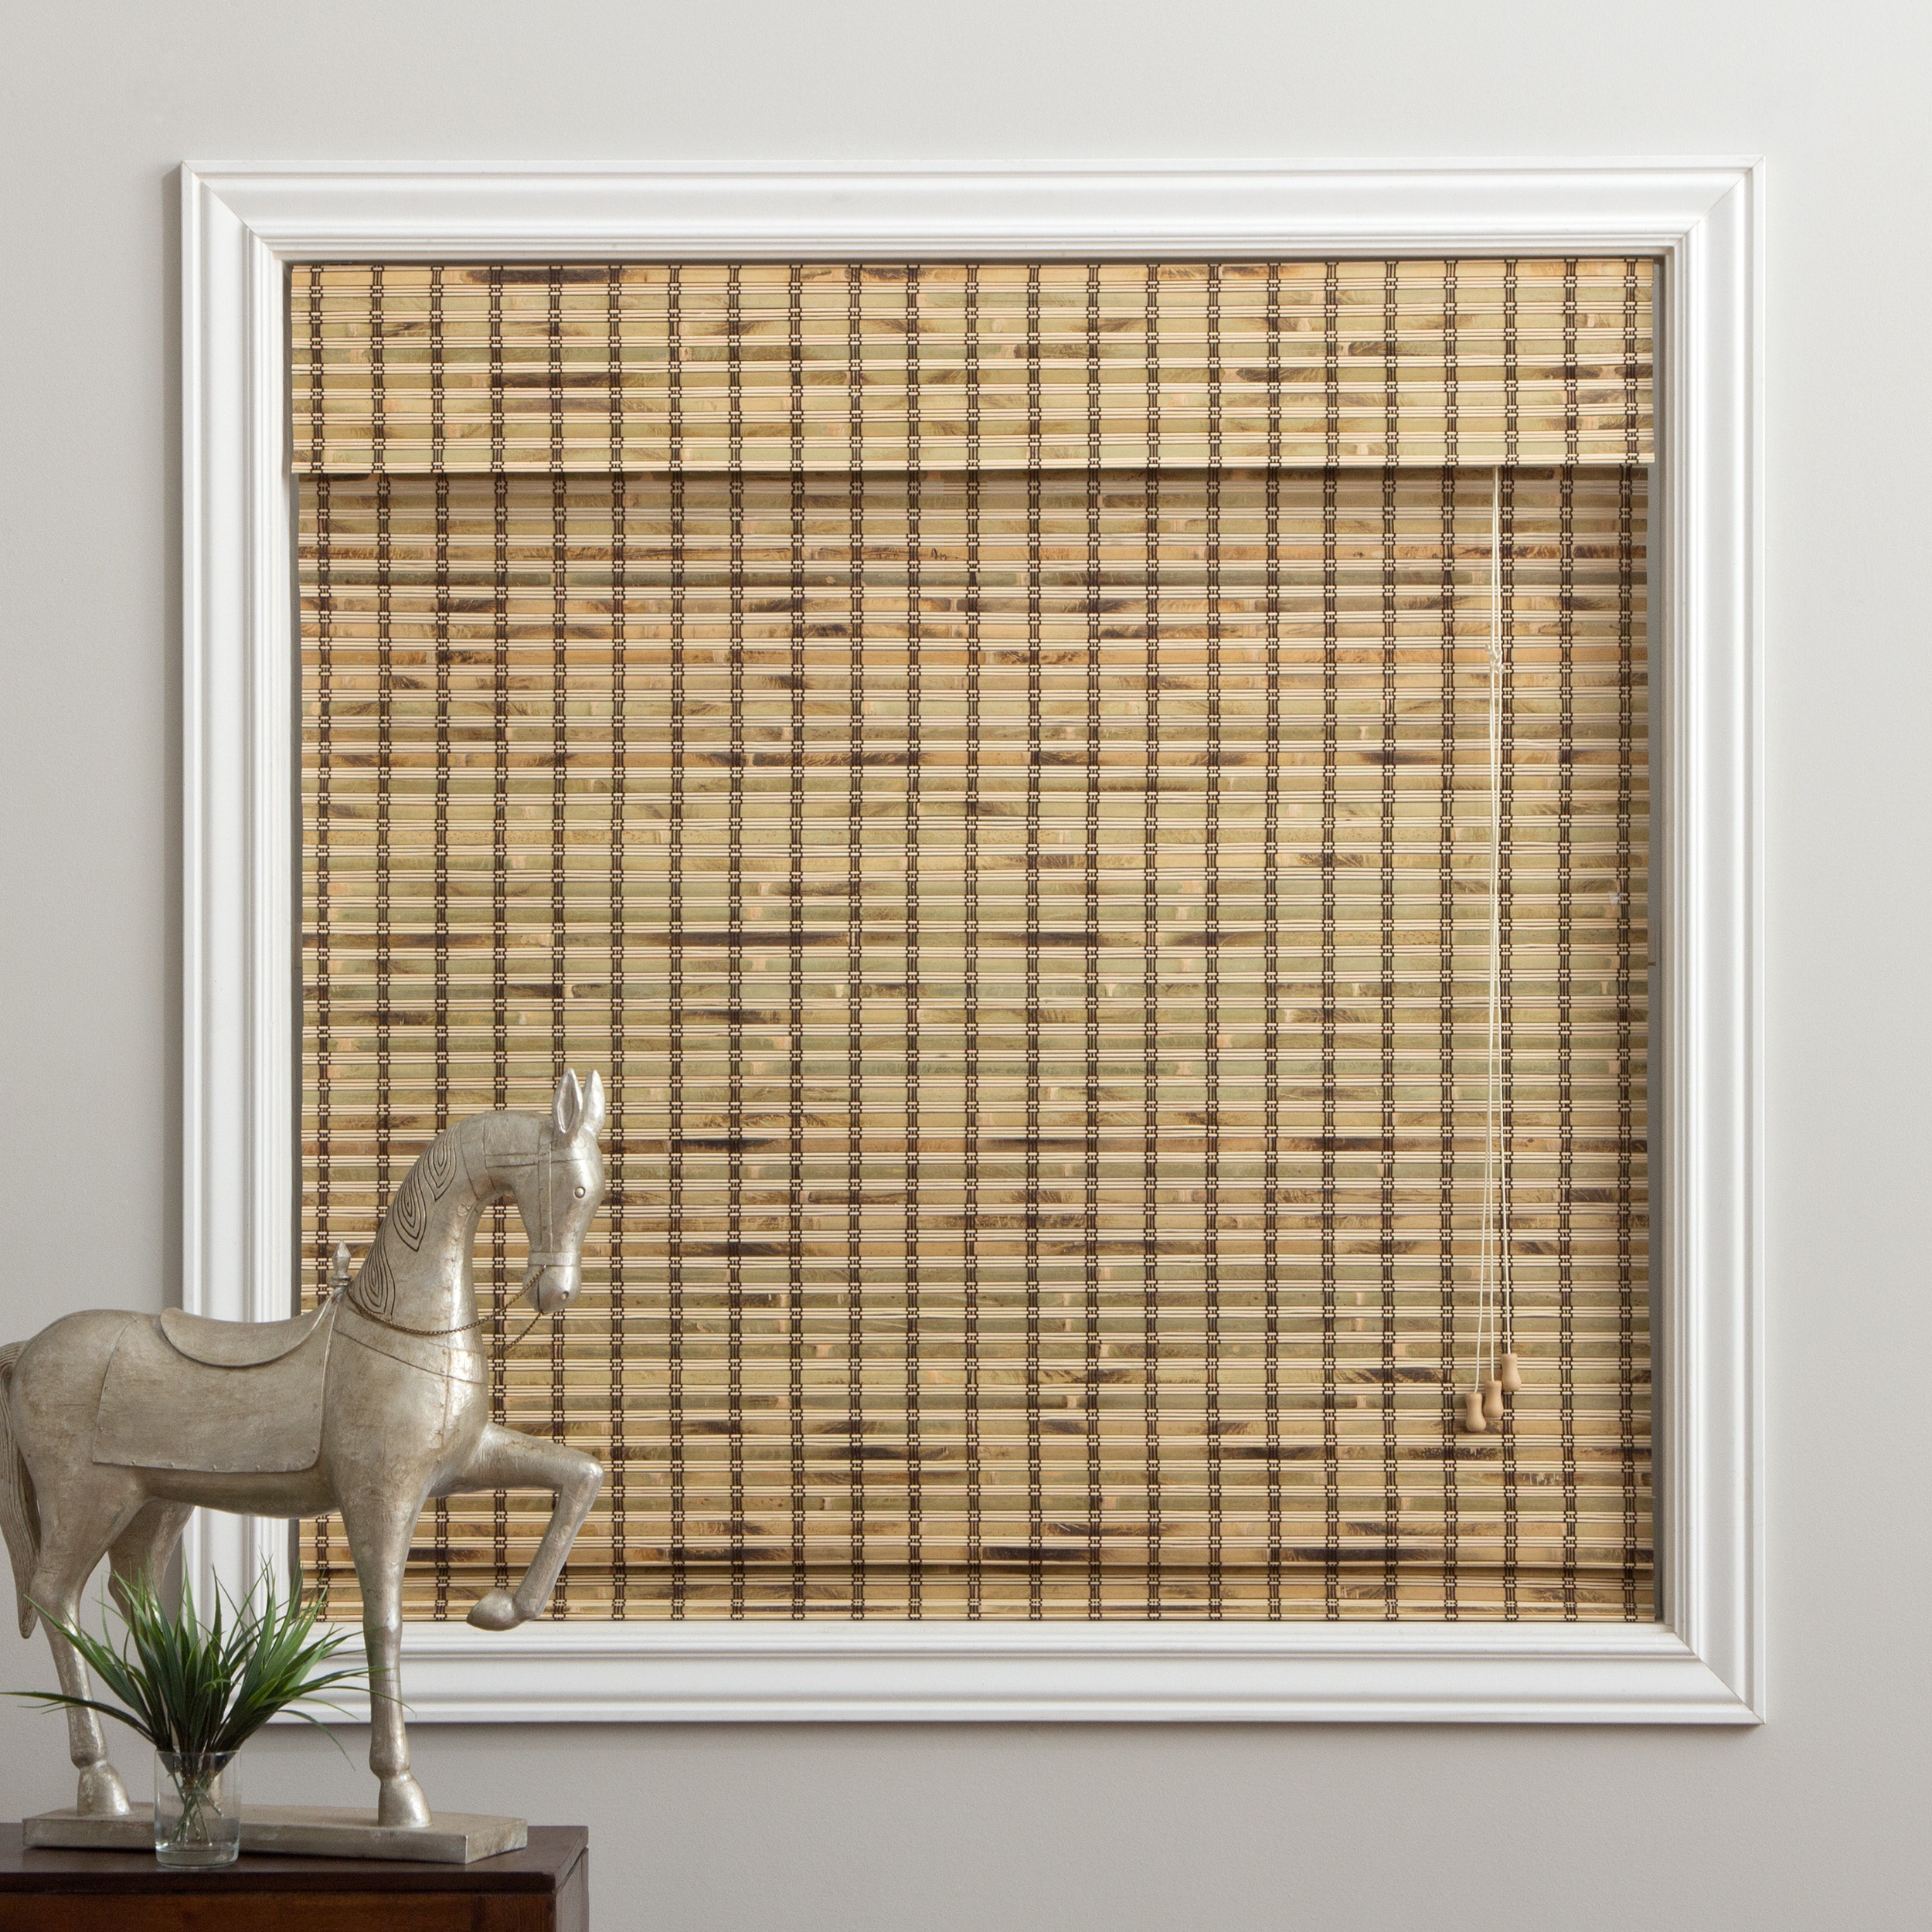 Arlo Blinds Rustique Bamboo Roman Shade with 54 Inch Heig...